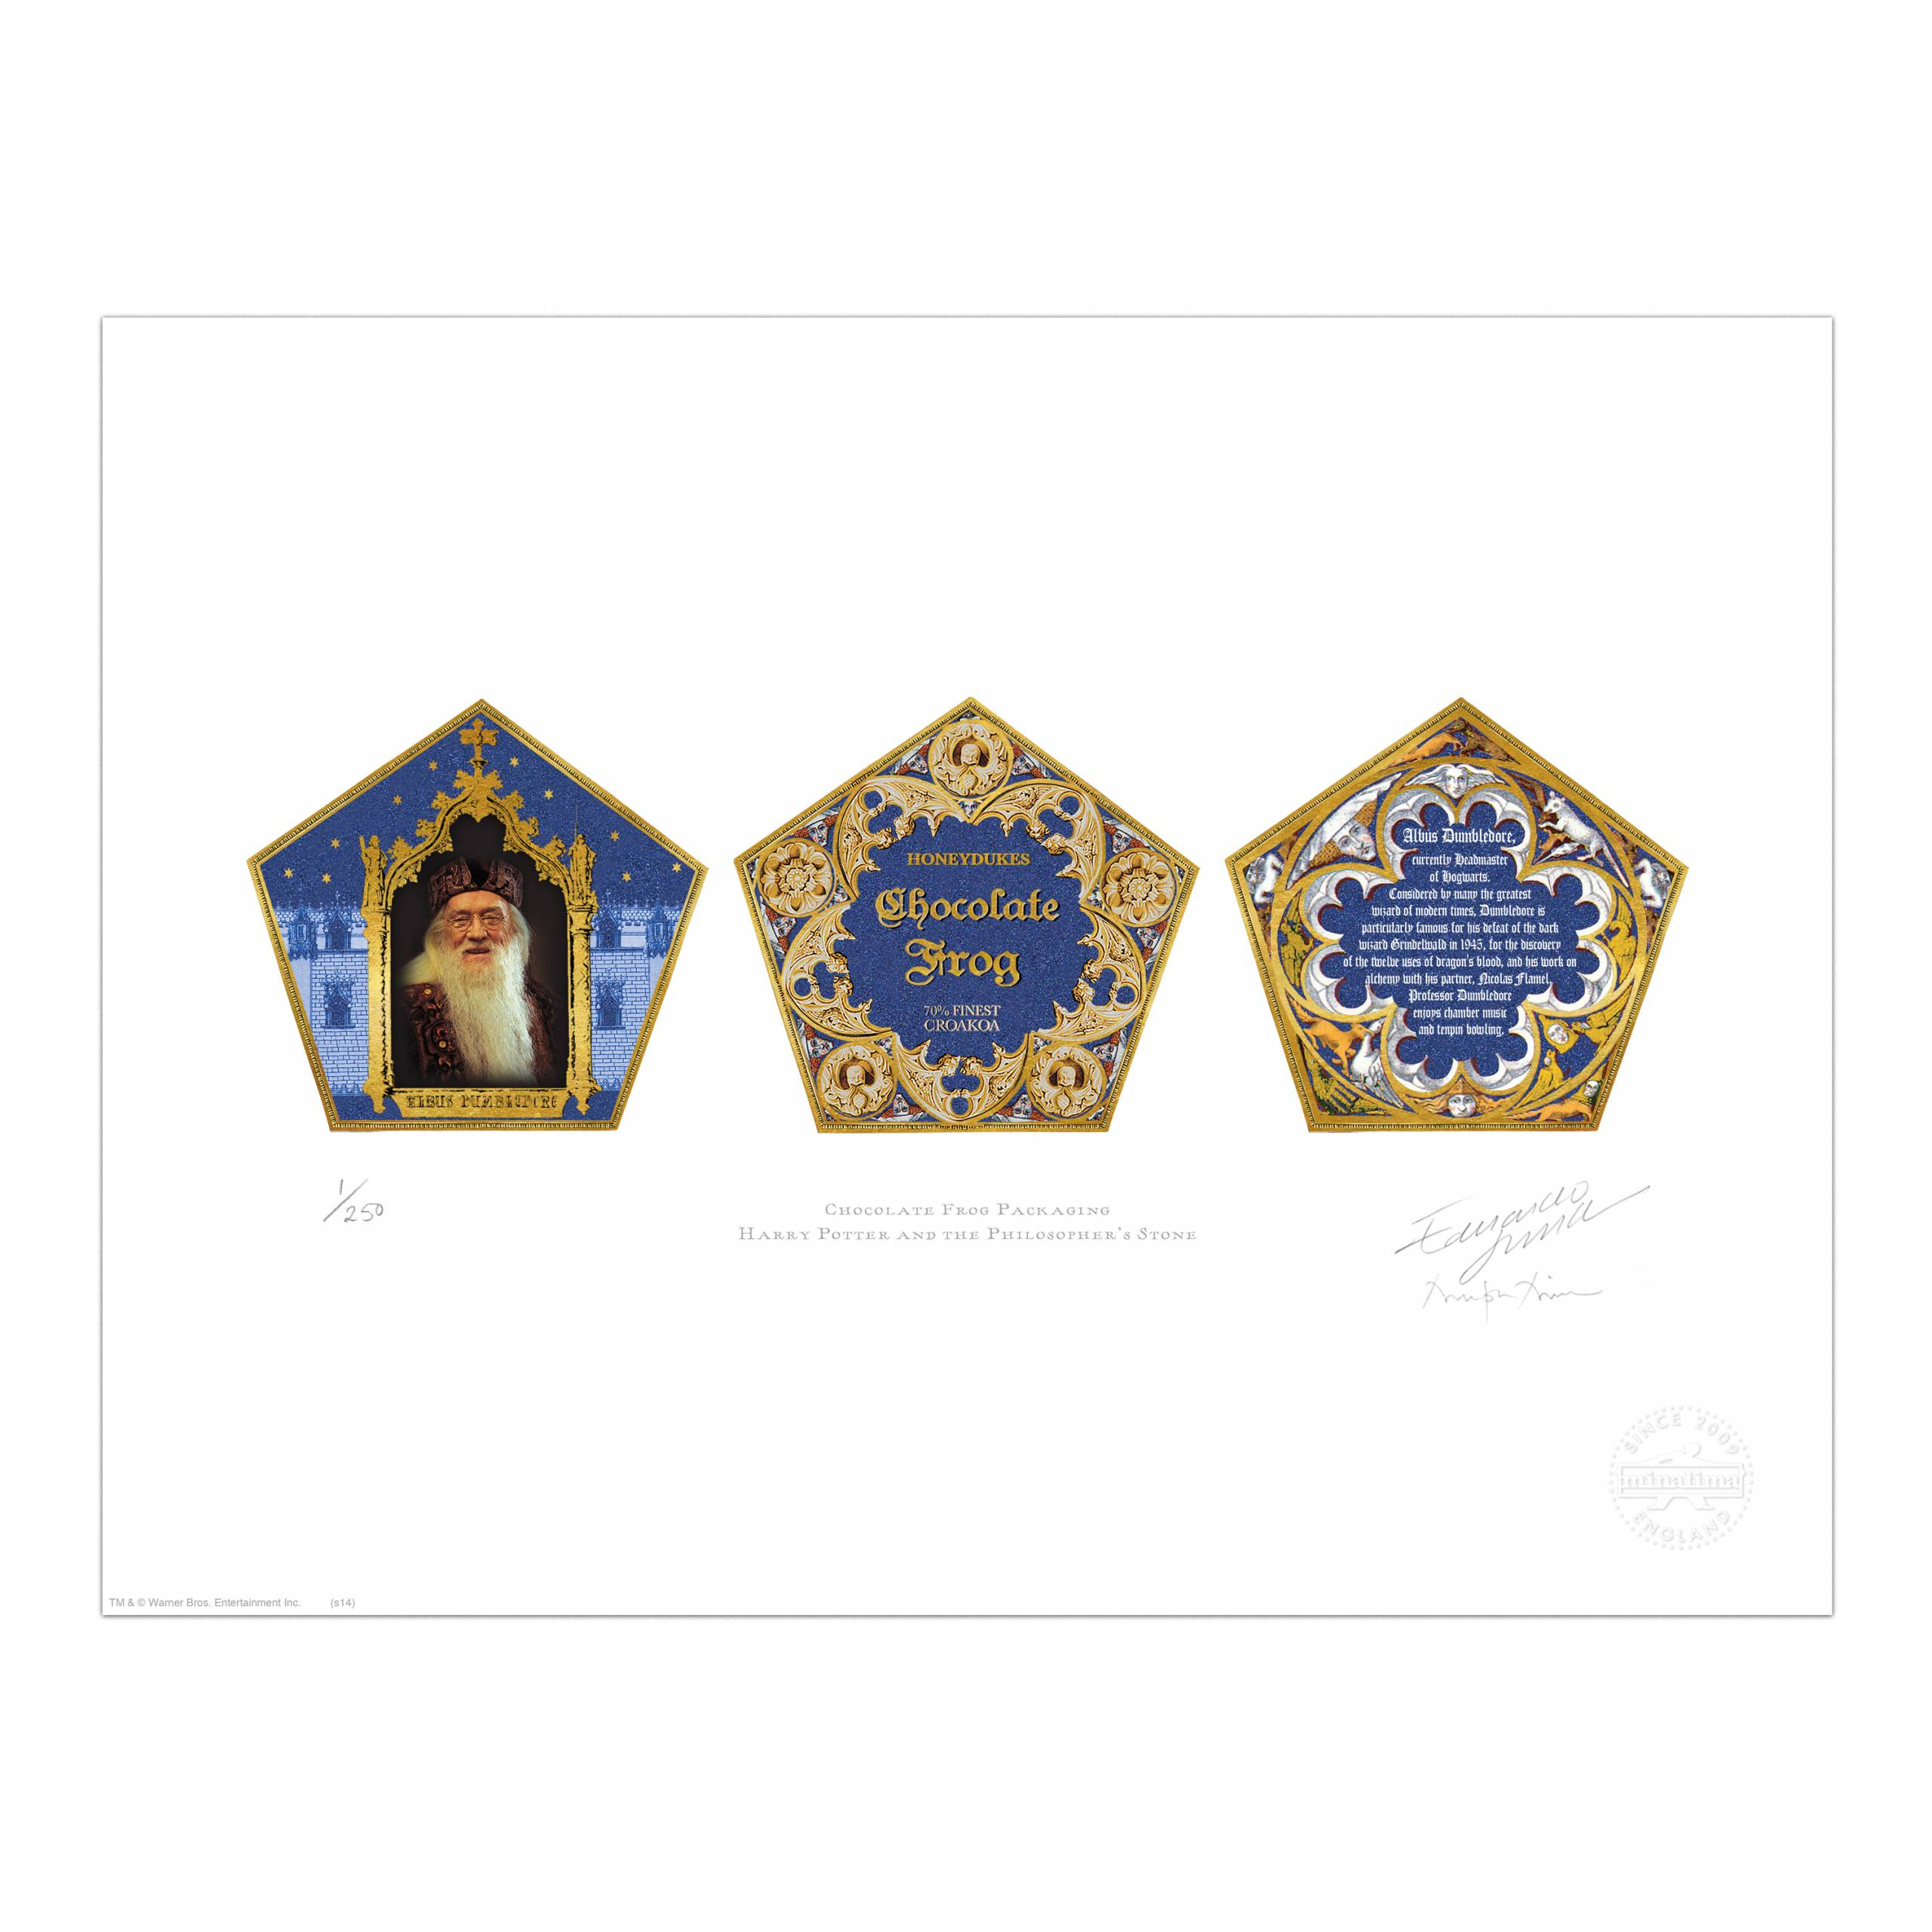 Chocolate Frog Packaging Print, Harry Potter - MinaLima Throughout Chocolate Frog Card Template